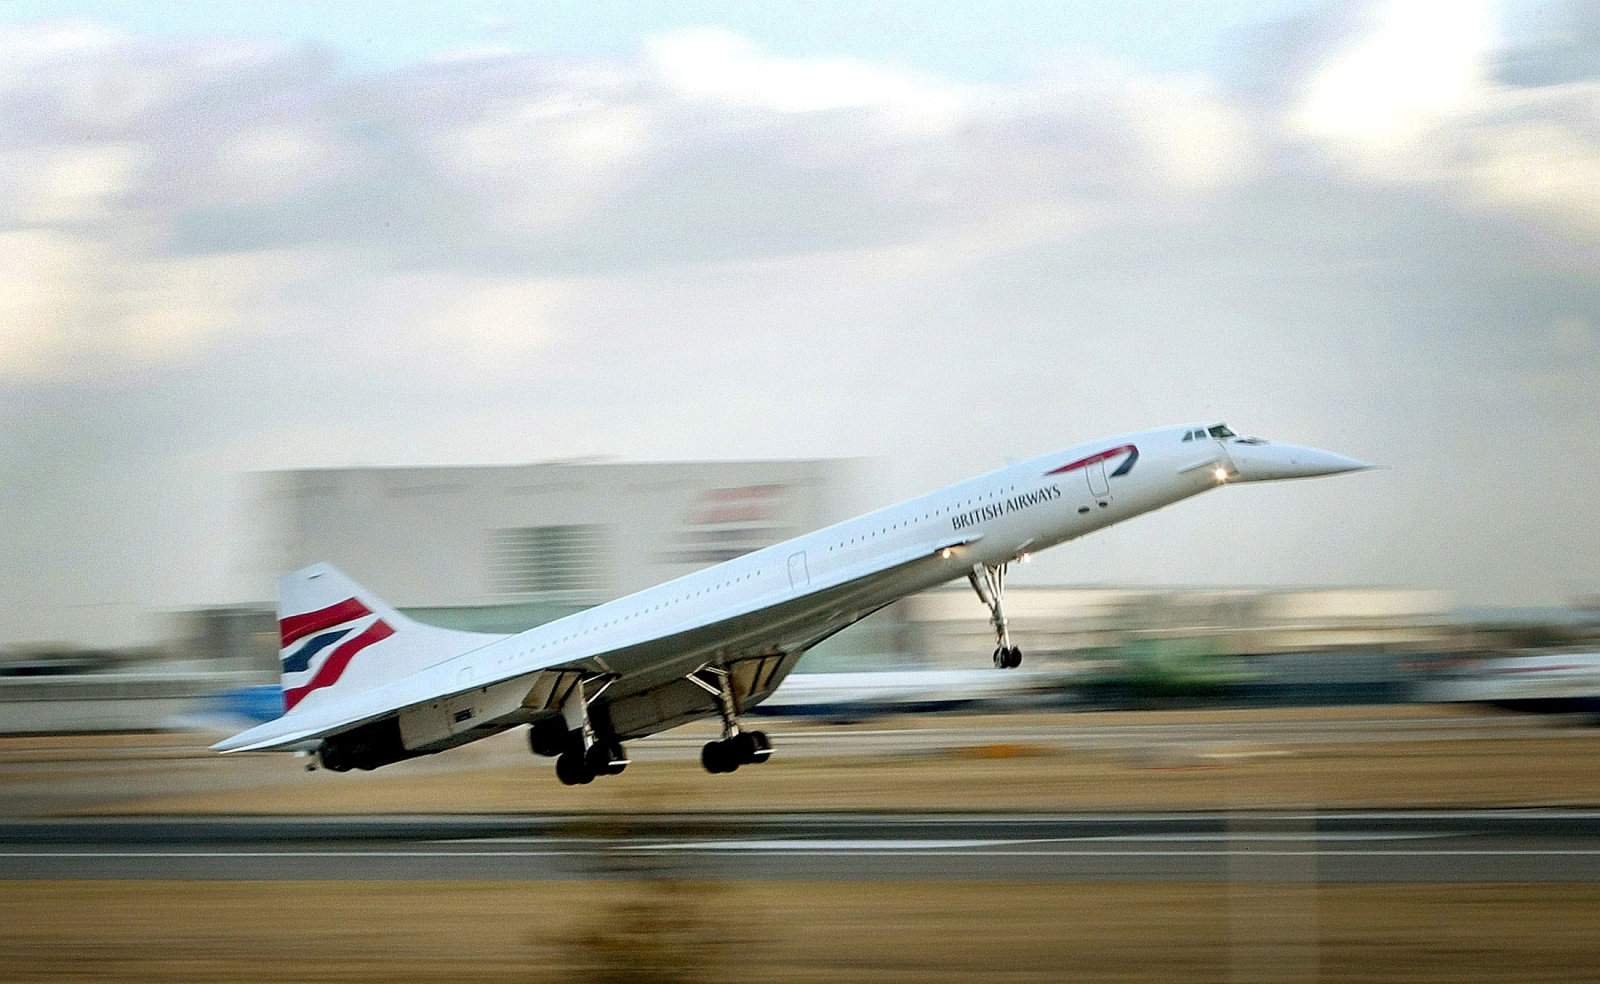 British Airways' very last Concorde passenger flight